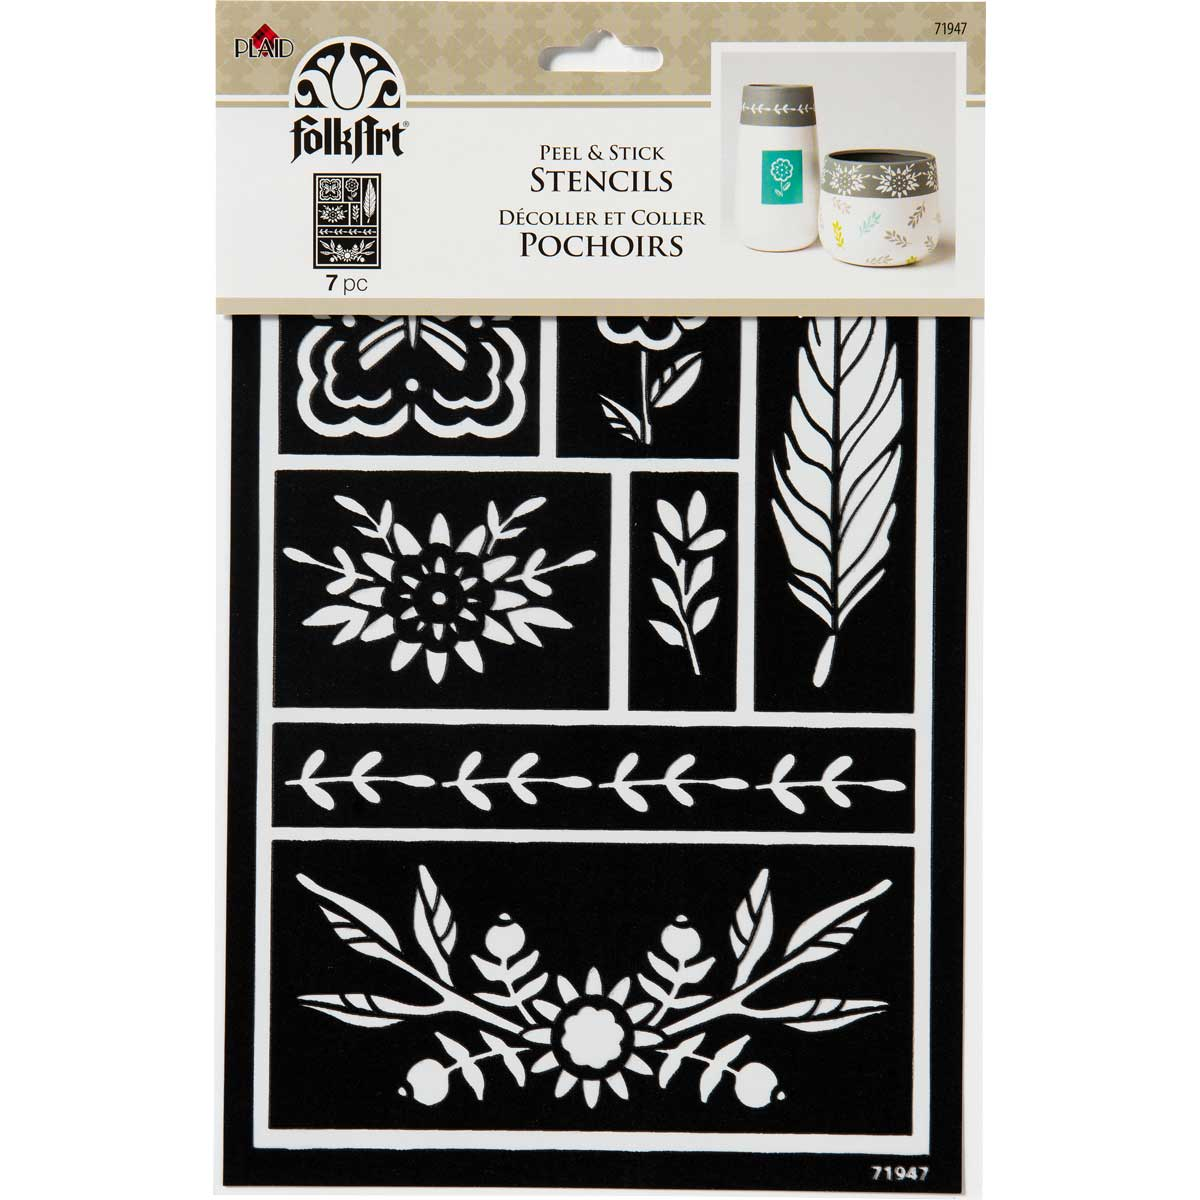 FolkArt ® Peel & Stick Painting Stencils - Feather